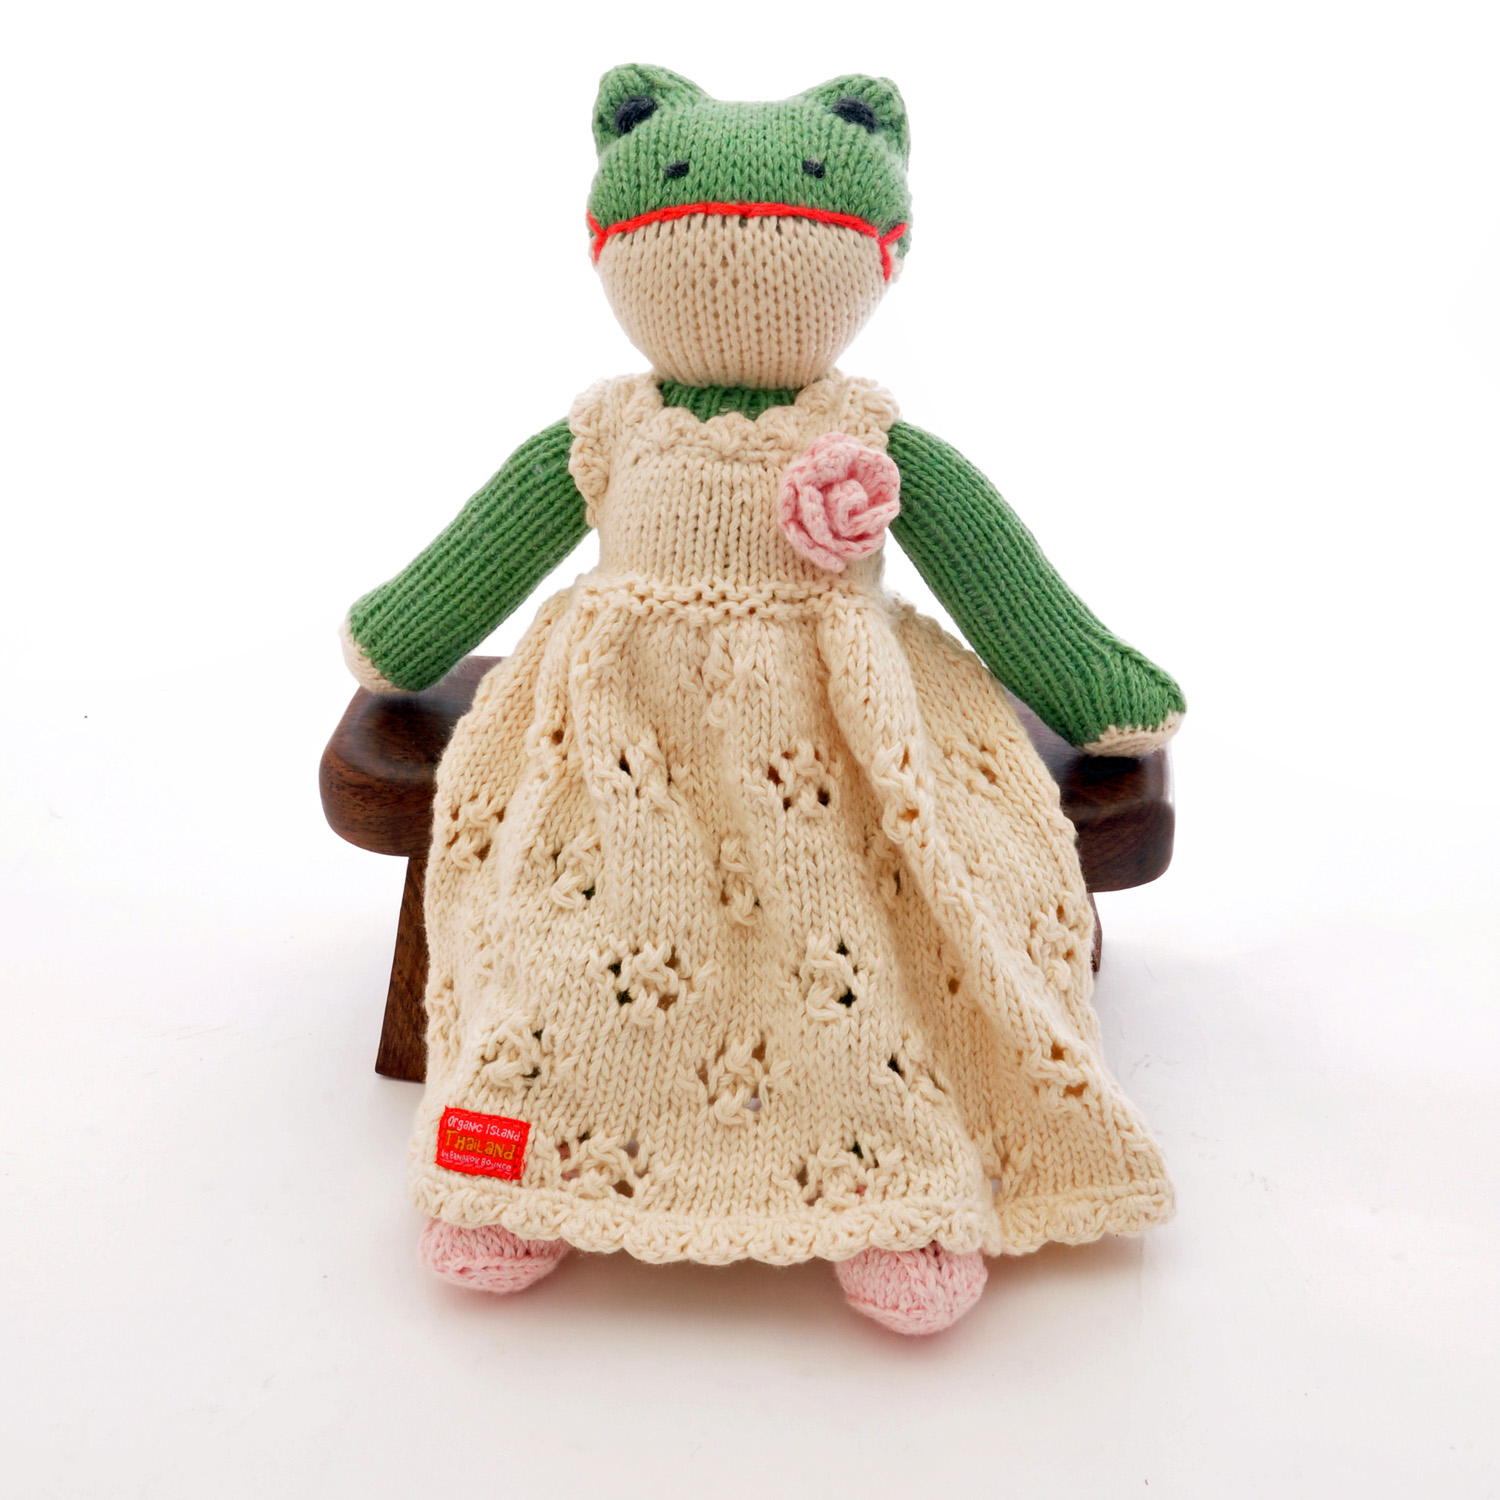 Frog Soft Toy in White Flower Dress